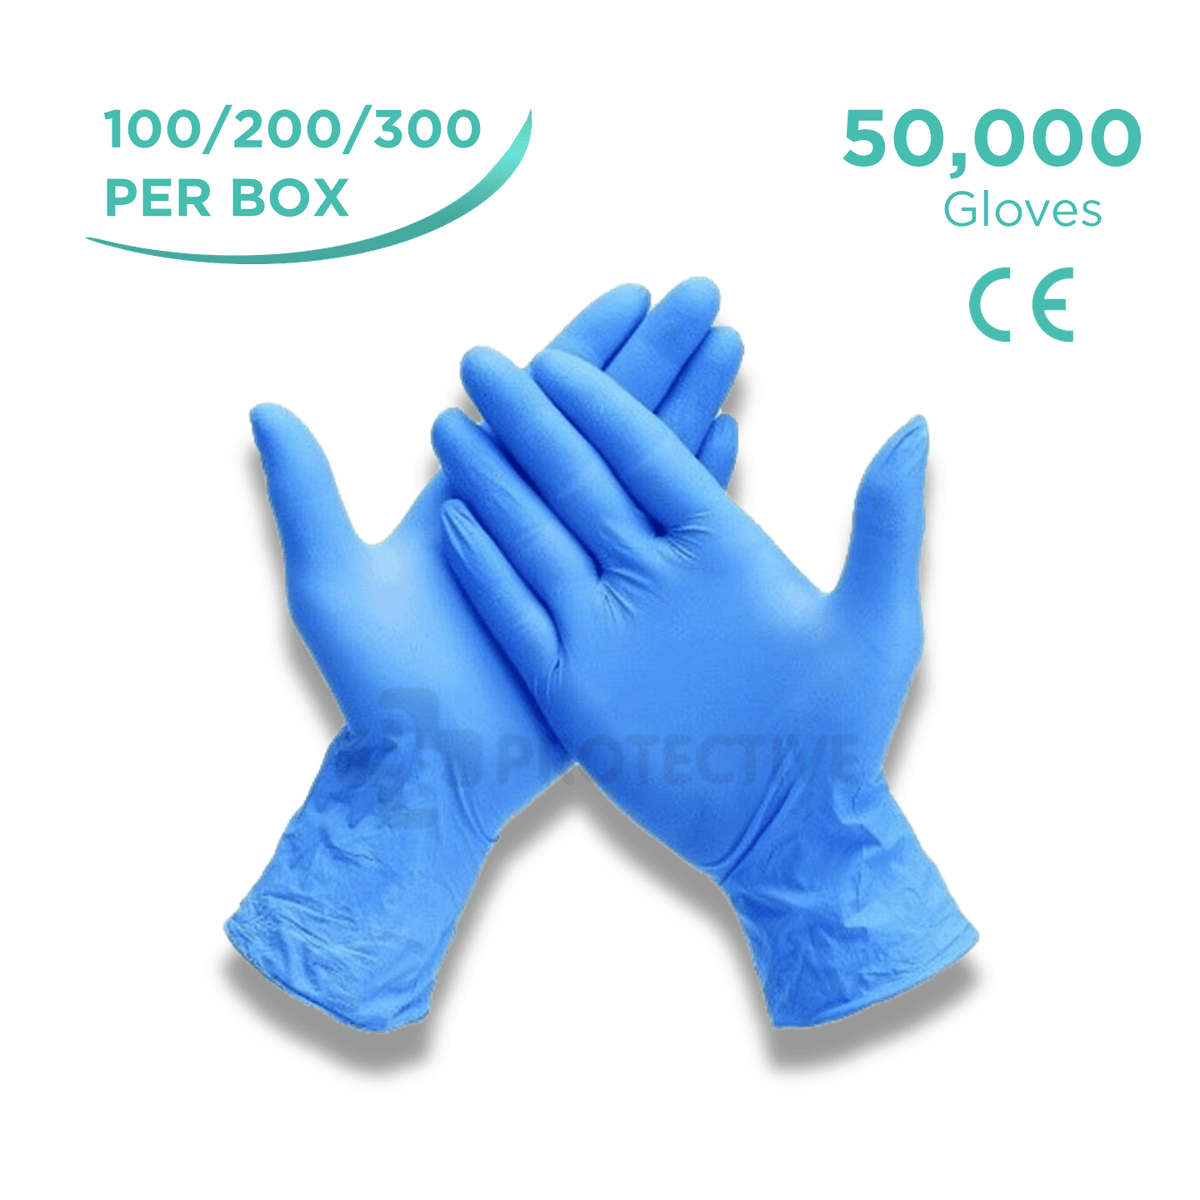 Chemo Nitrile Examination Gloves ASTM 6978 - Pack of 50,000 - USA Medical Supply - DB Protective